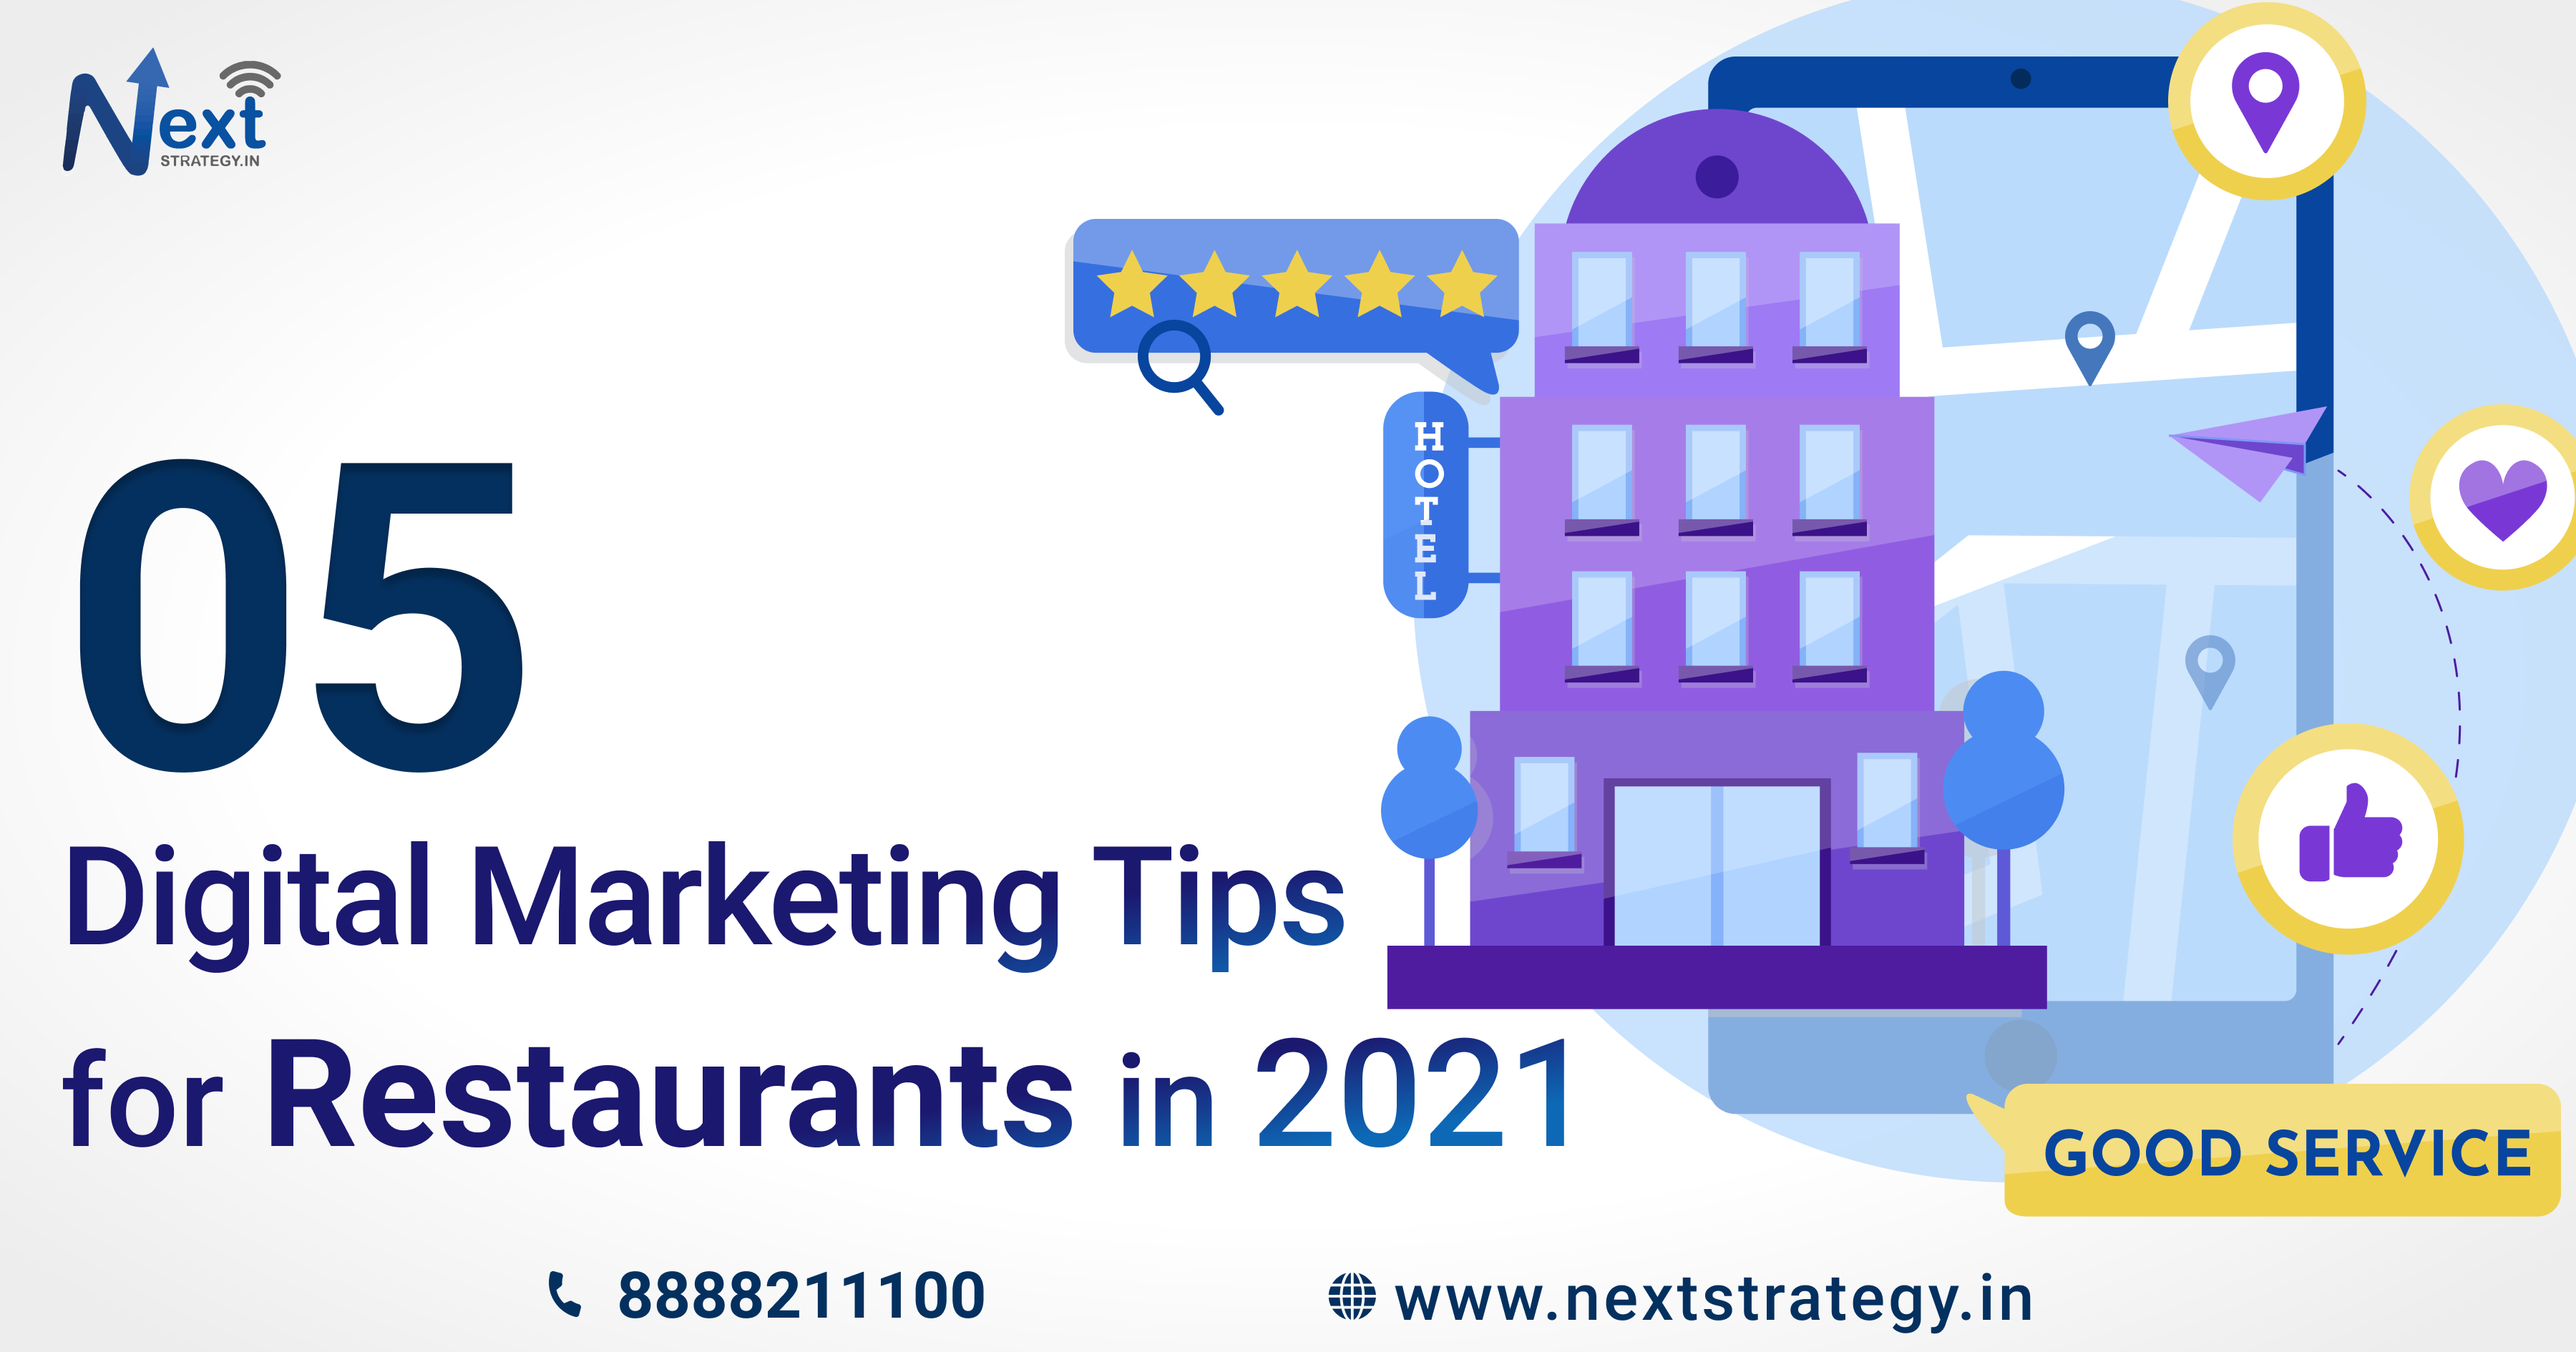 Digital Marketing Tips for restaurants in 2021